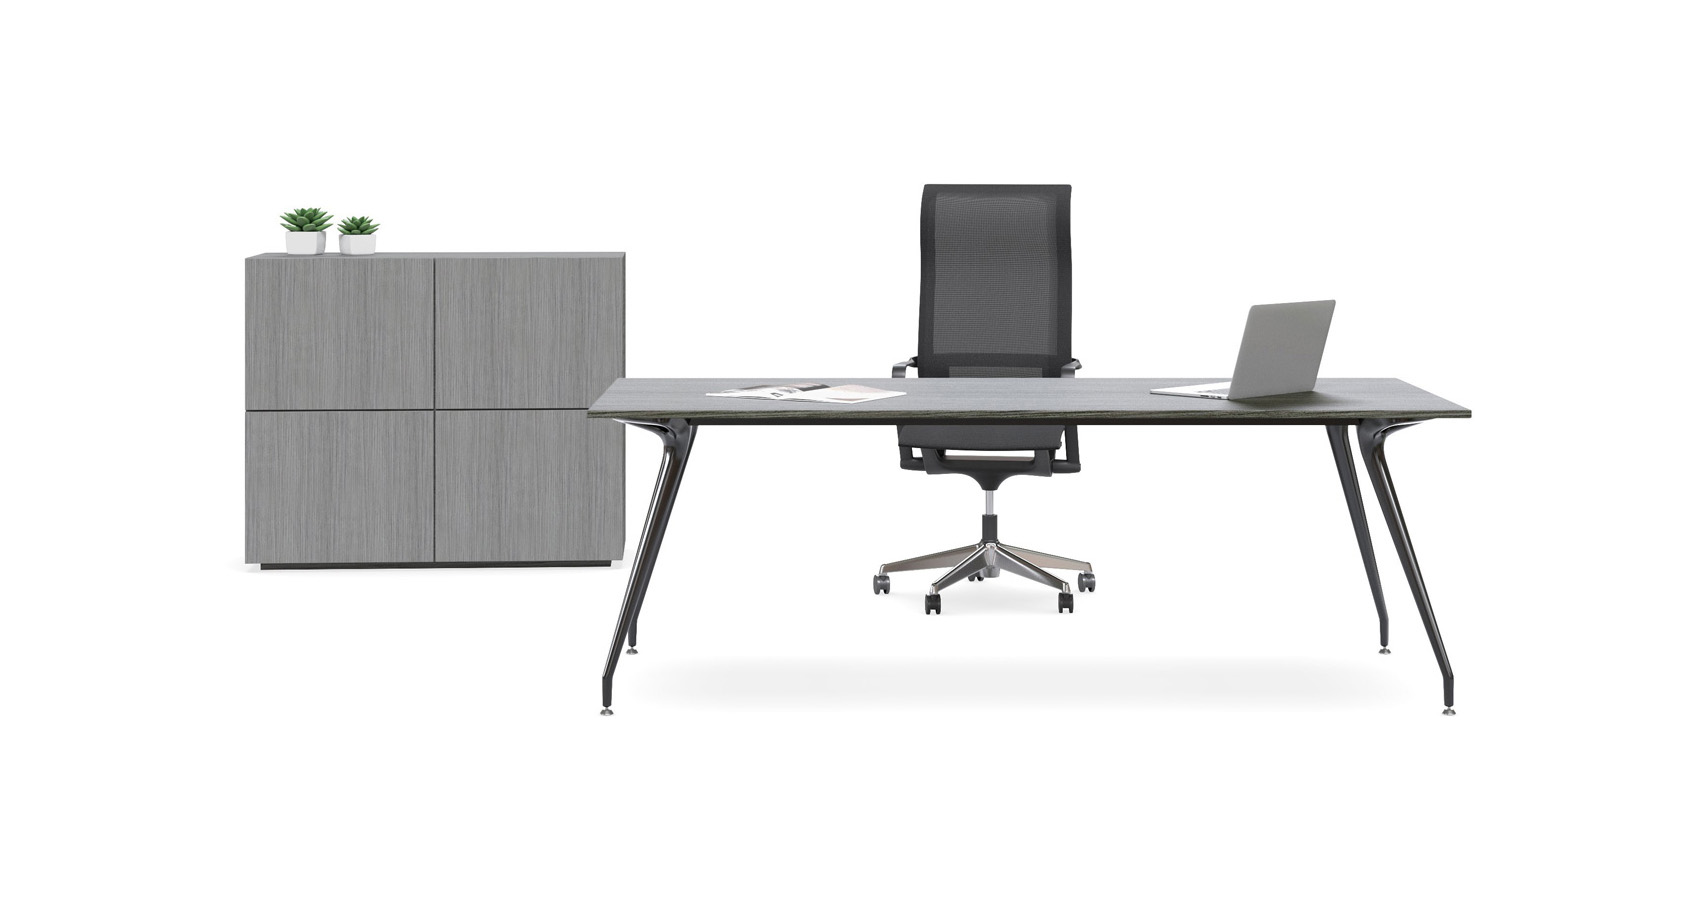 Dart Executive Desk with Dart Confence Table, Miro Chairs and Push Storage